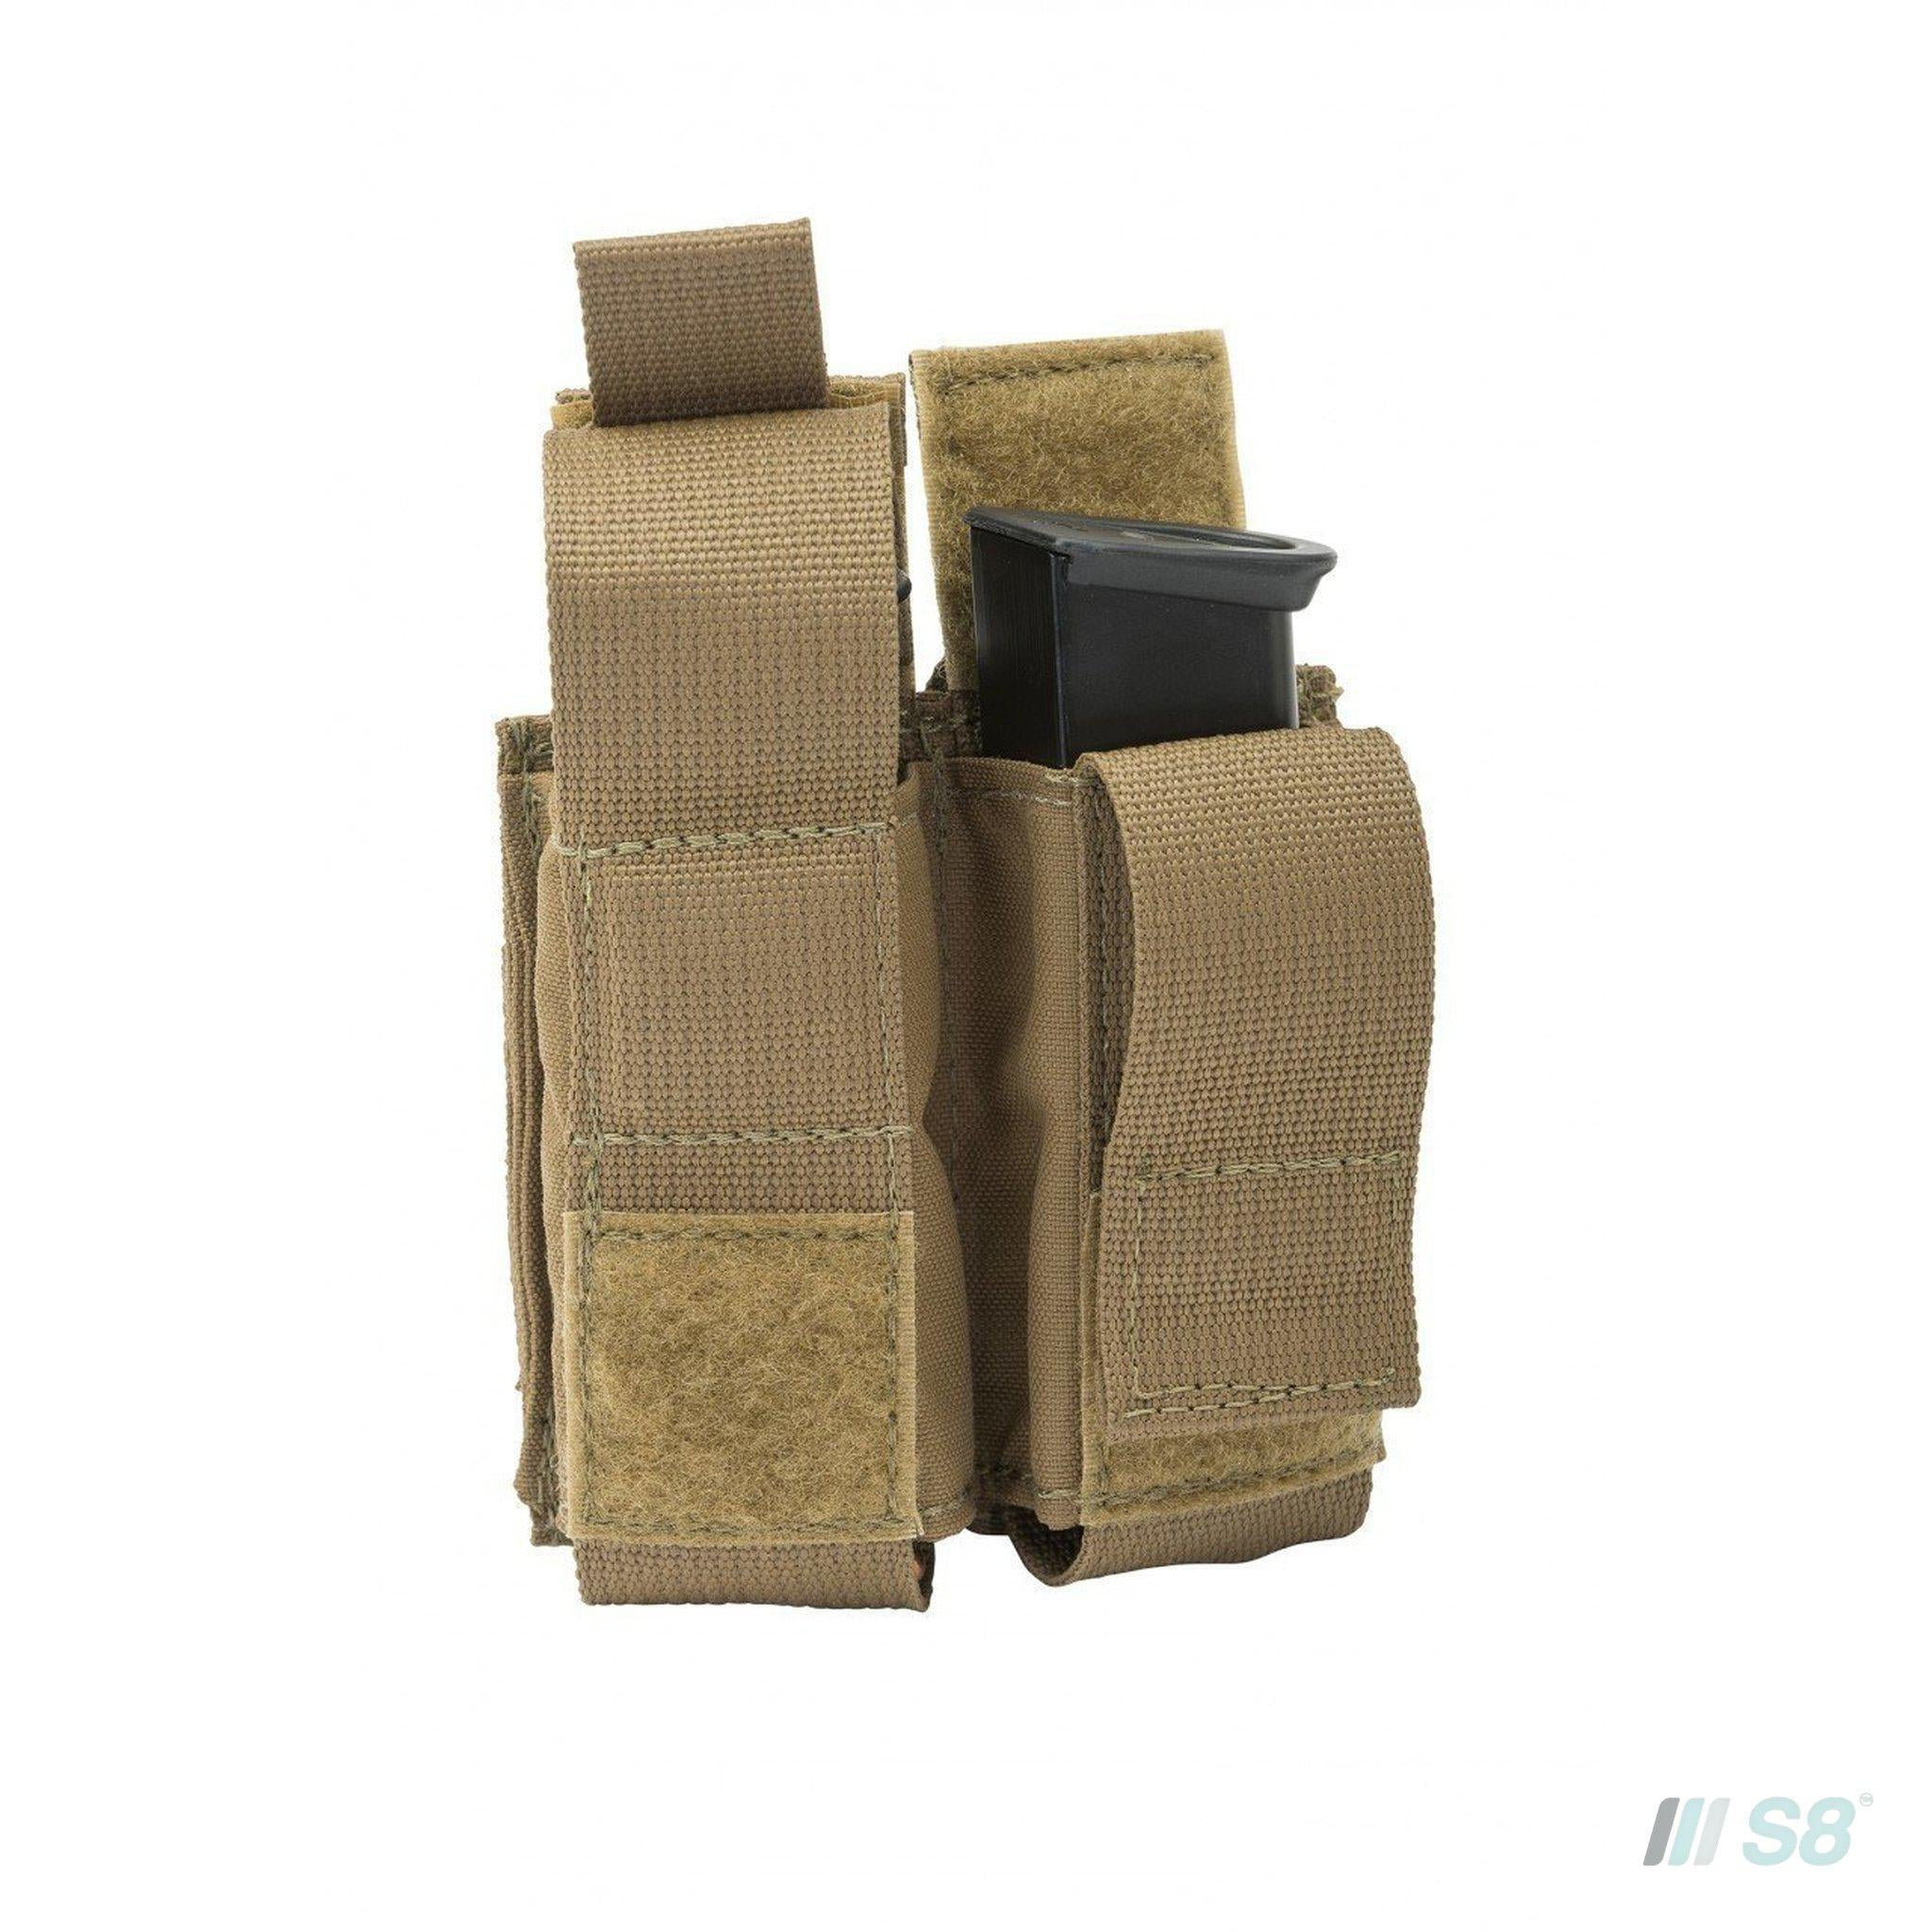 T3 Magnet Double Pistol Mag Pouch + Flap (2)-T3-S8 Products Group